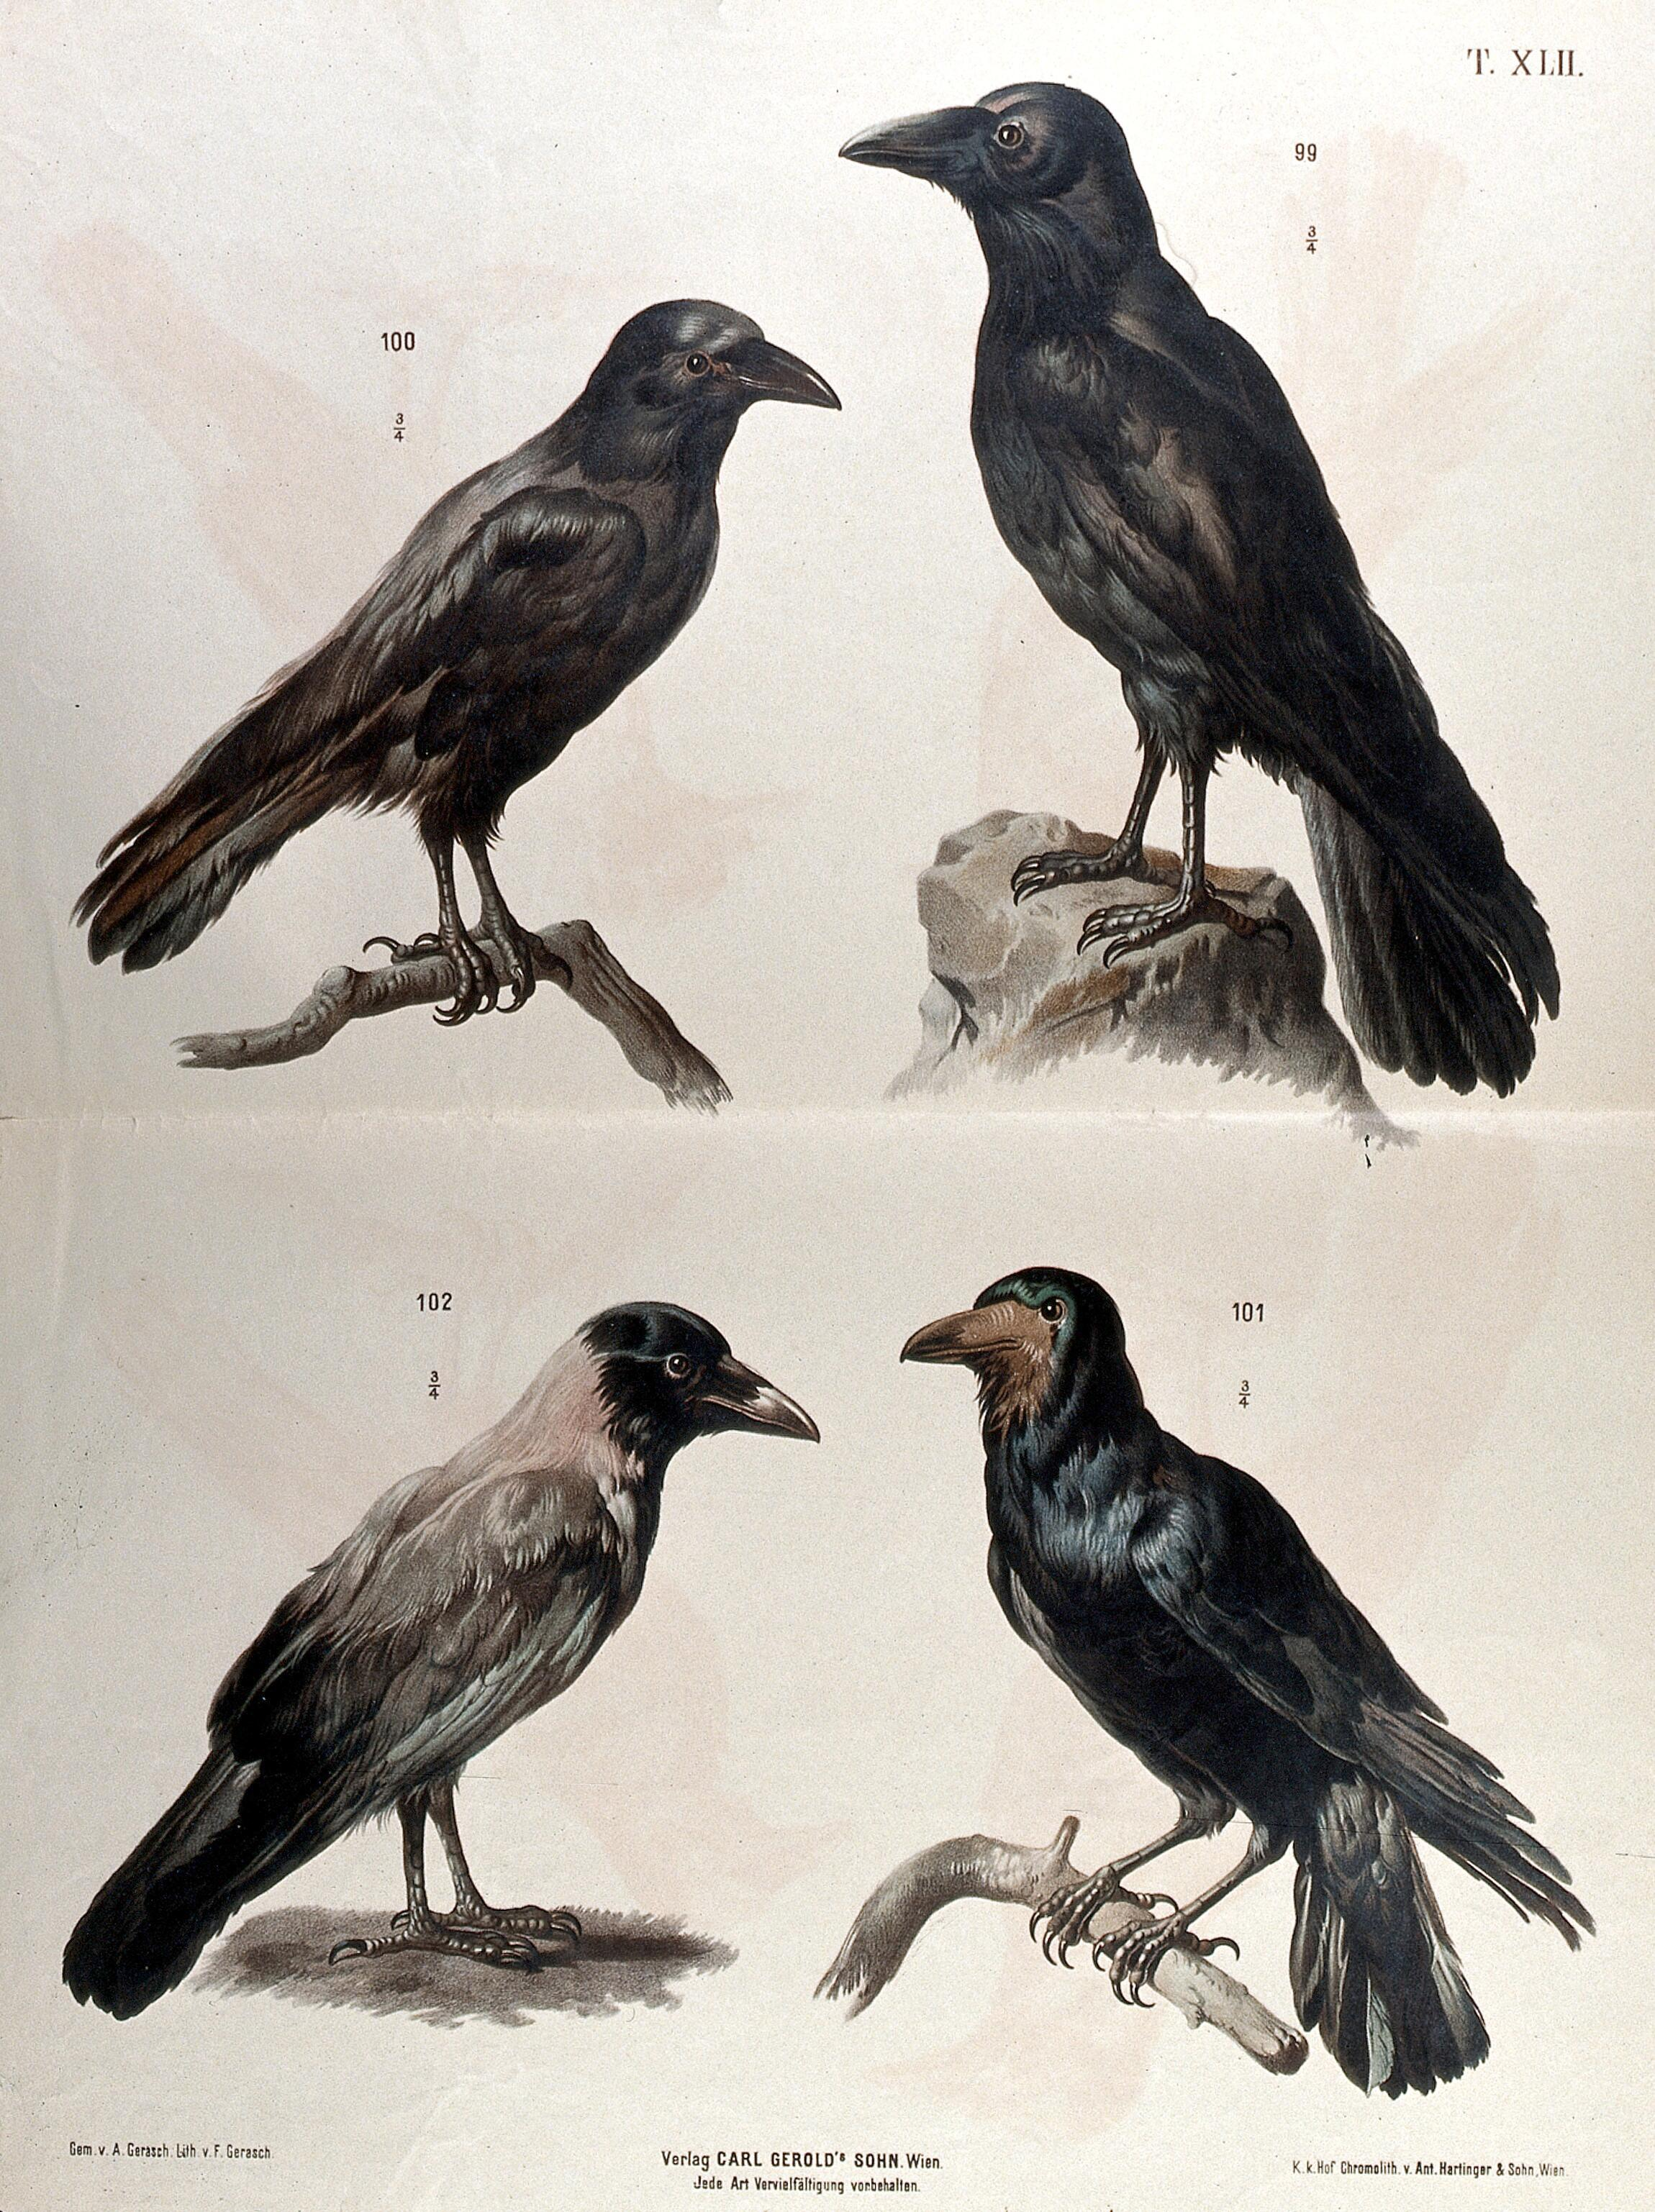 Birds Of The Crow Family Four Figures Including A Crow A Raven And A Rook Chromolithograph By F Gerasch After A Gerasch 1860 1880 Wellcome Collection It's consistently great food and service with a welcoming, friendly, cozy ambiance. birds of the crow family four figures